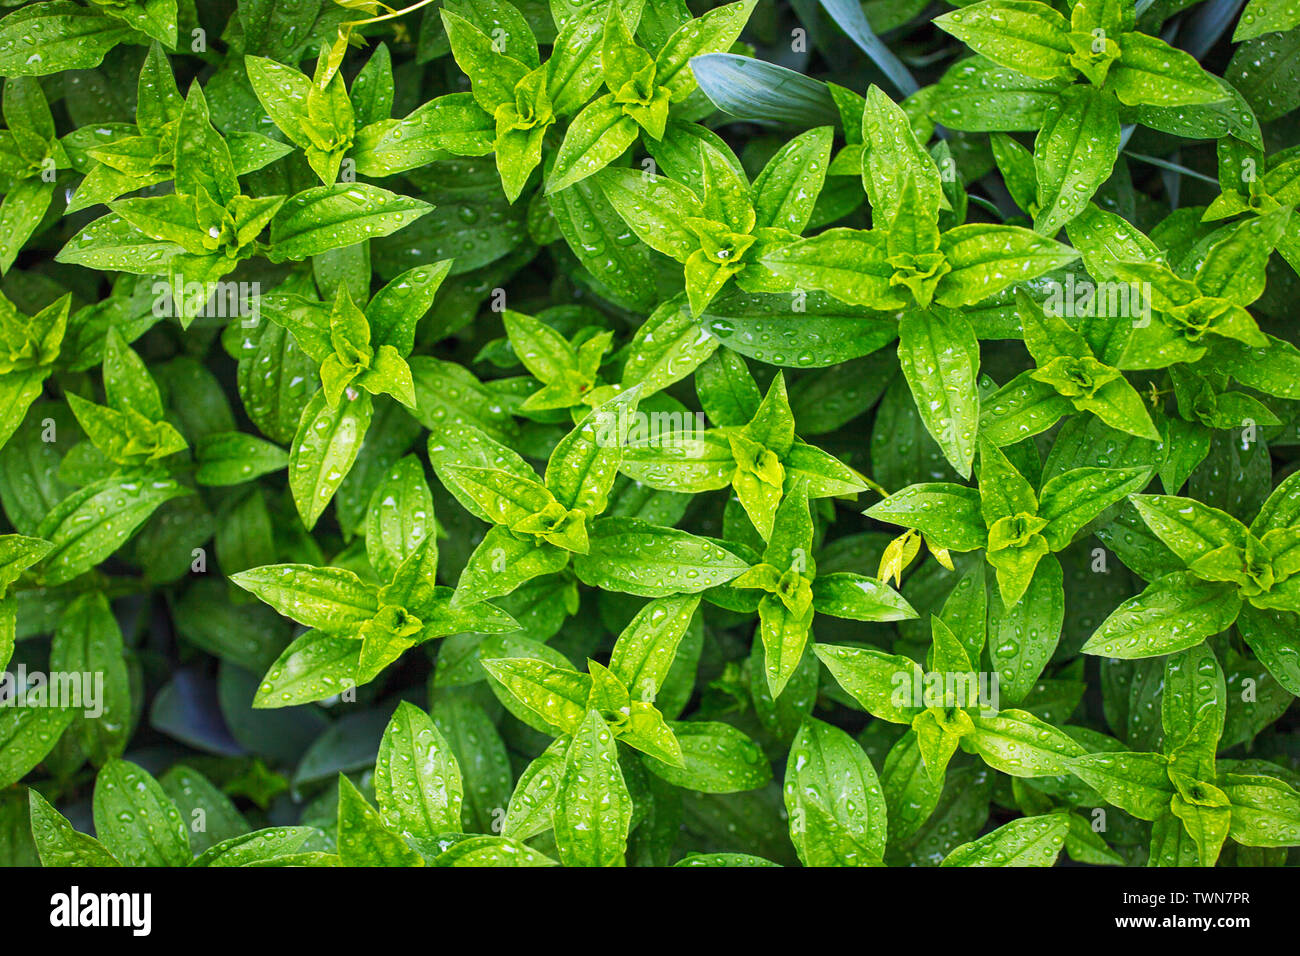 Plants leaves nature background, organic natural petal pattern, beauty of nature after rain, eco-friendly summer greenery background - Stock Image